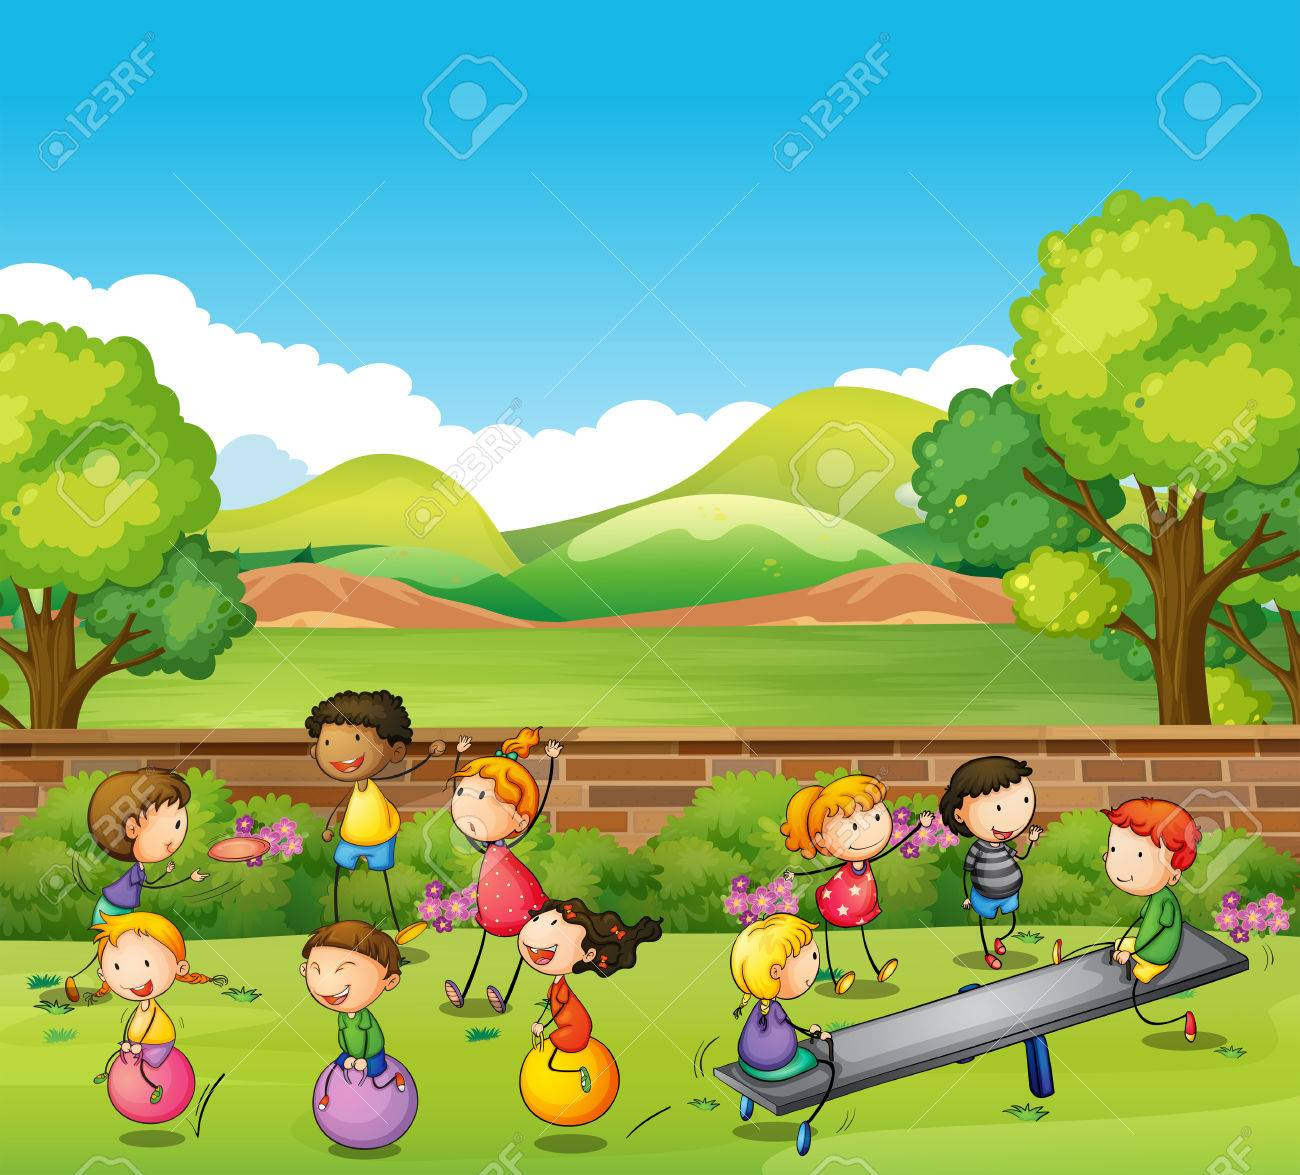 Children playing games in the park illustration - 58502900